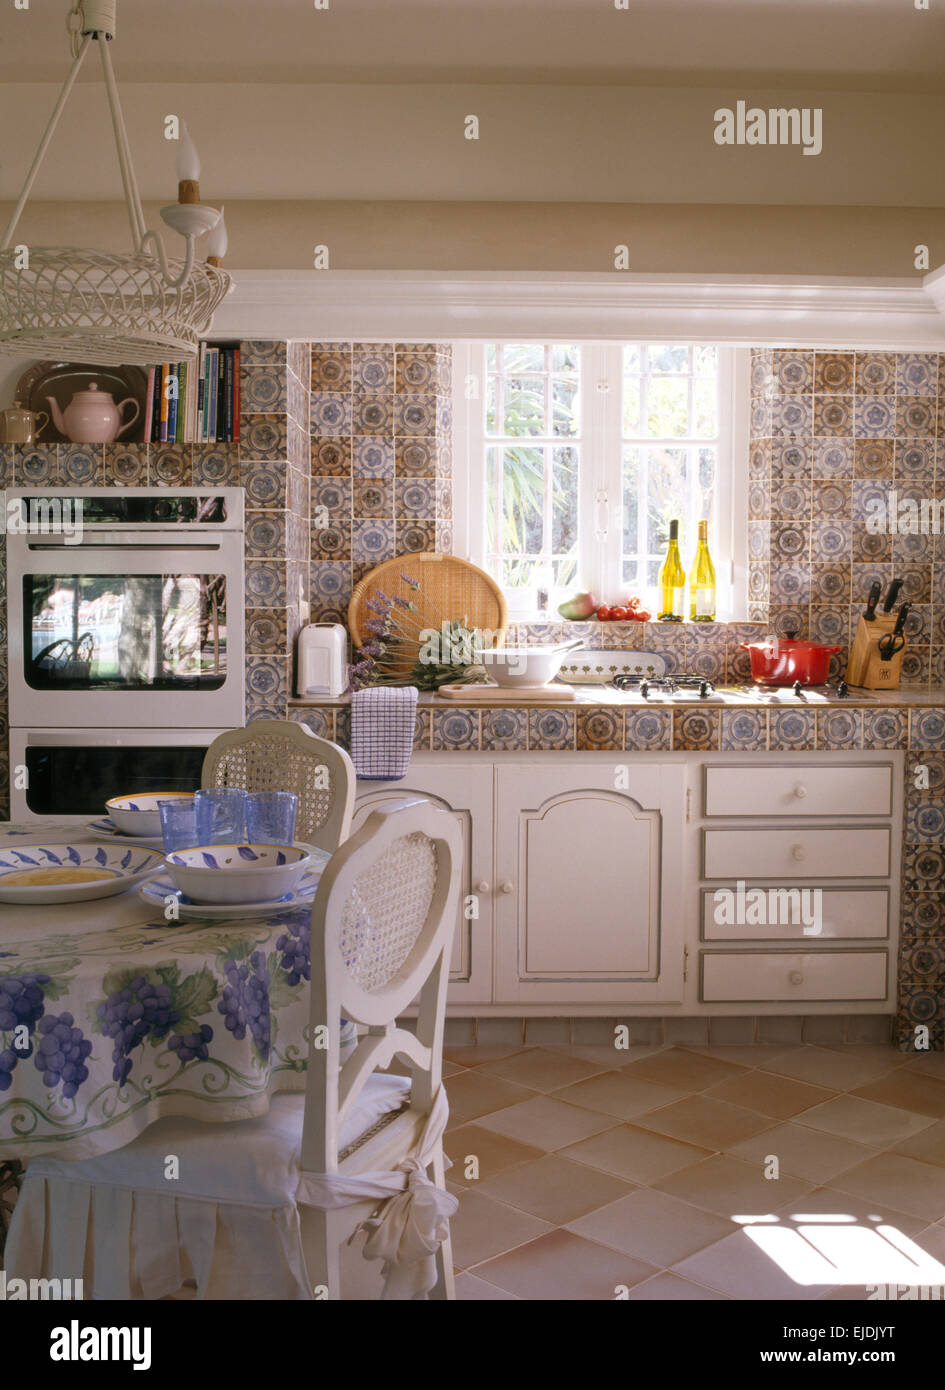 Patterned Wall Tiles And Worktop In French Country Kitchen